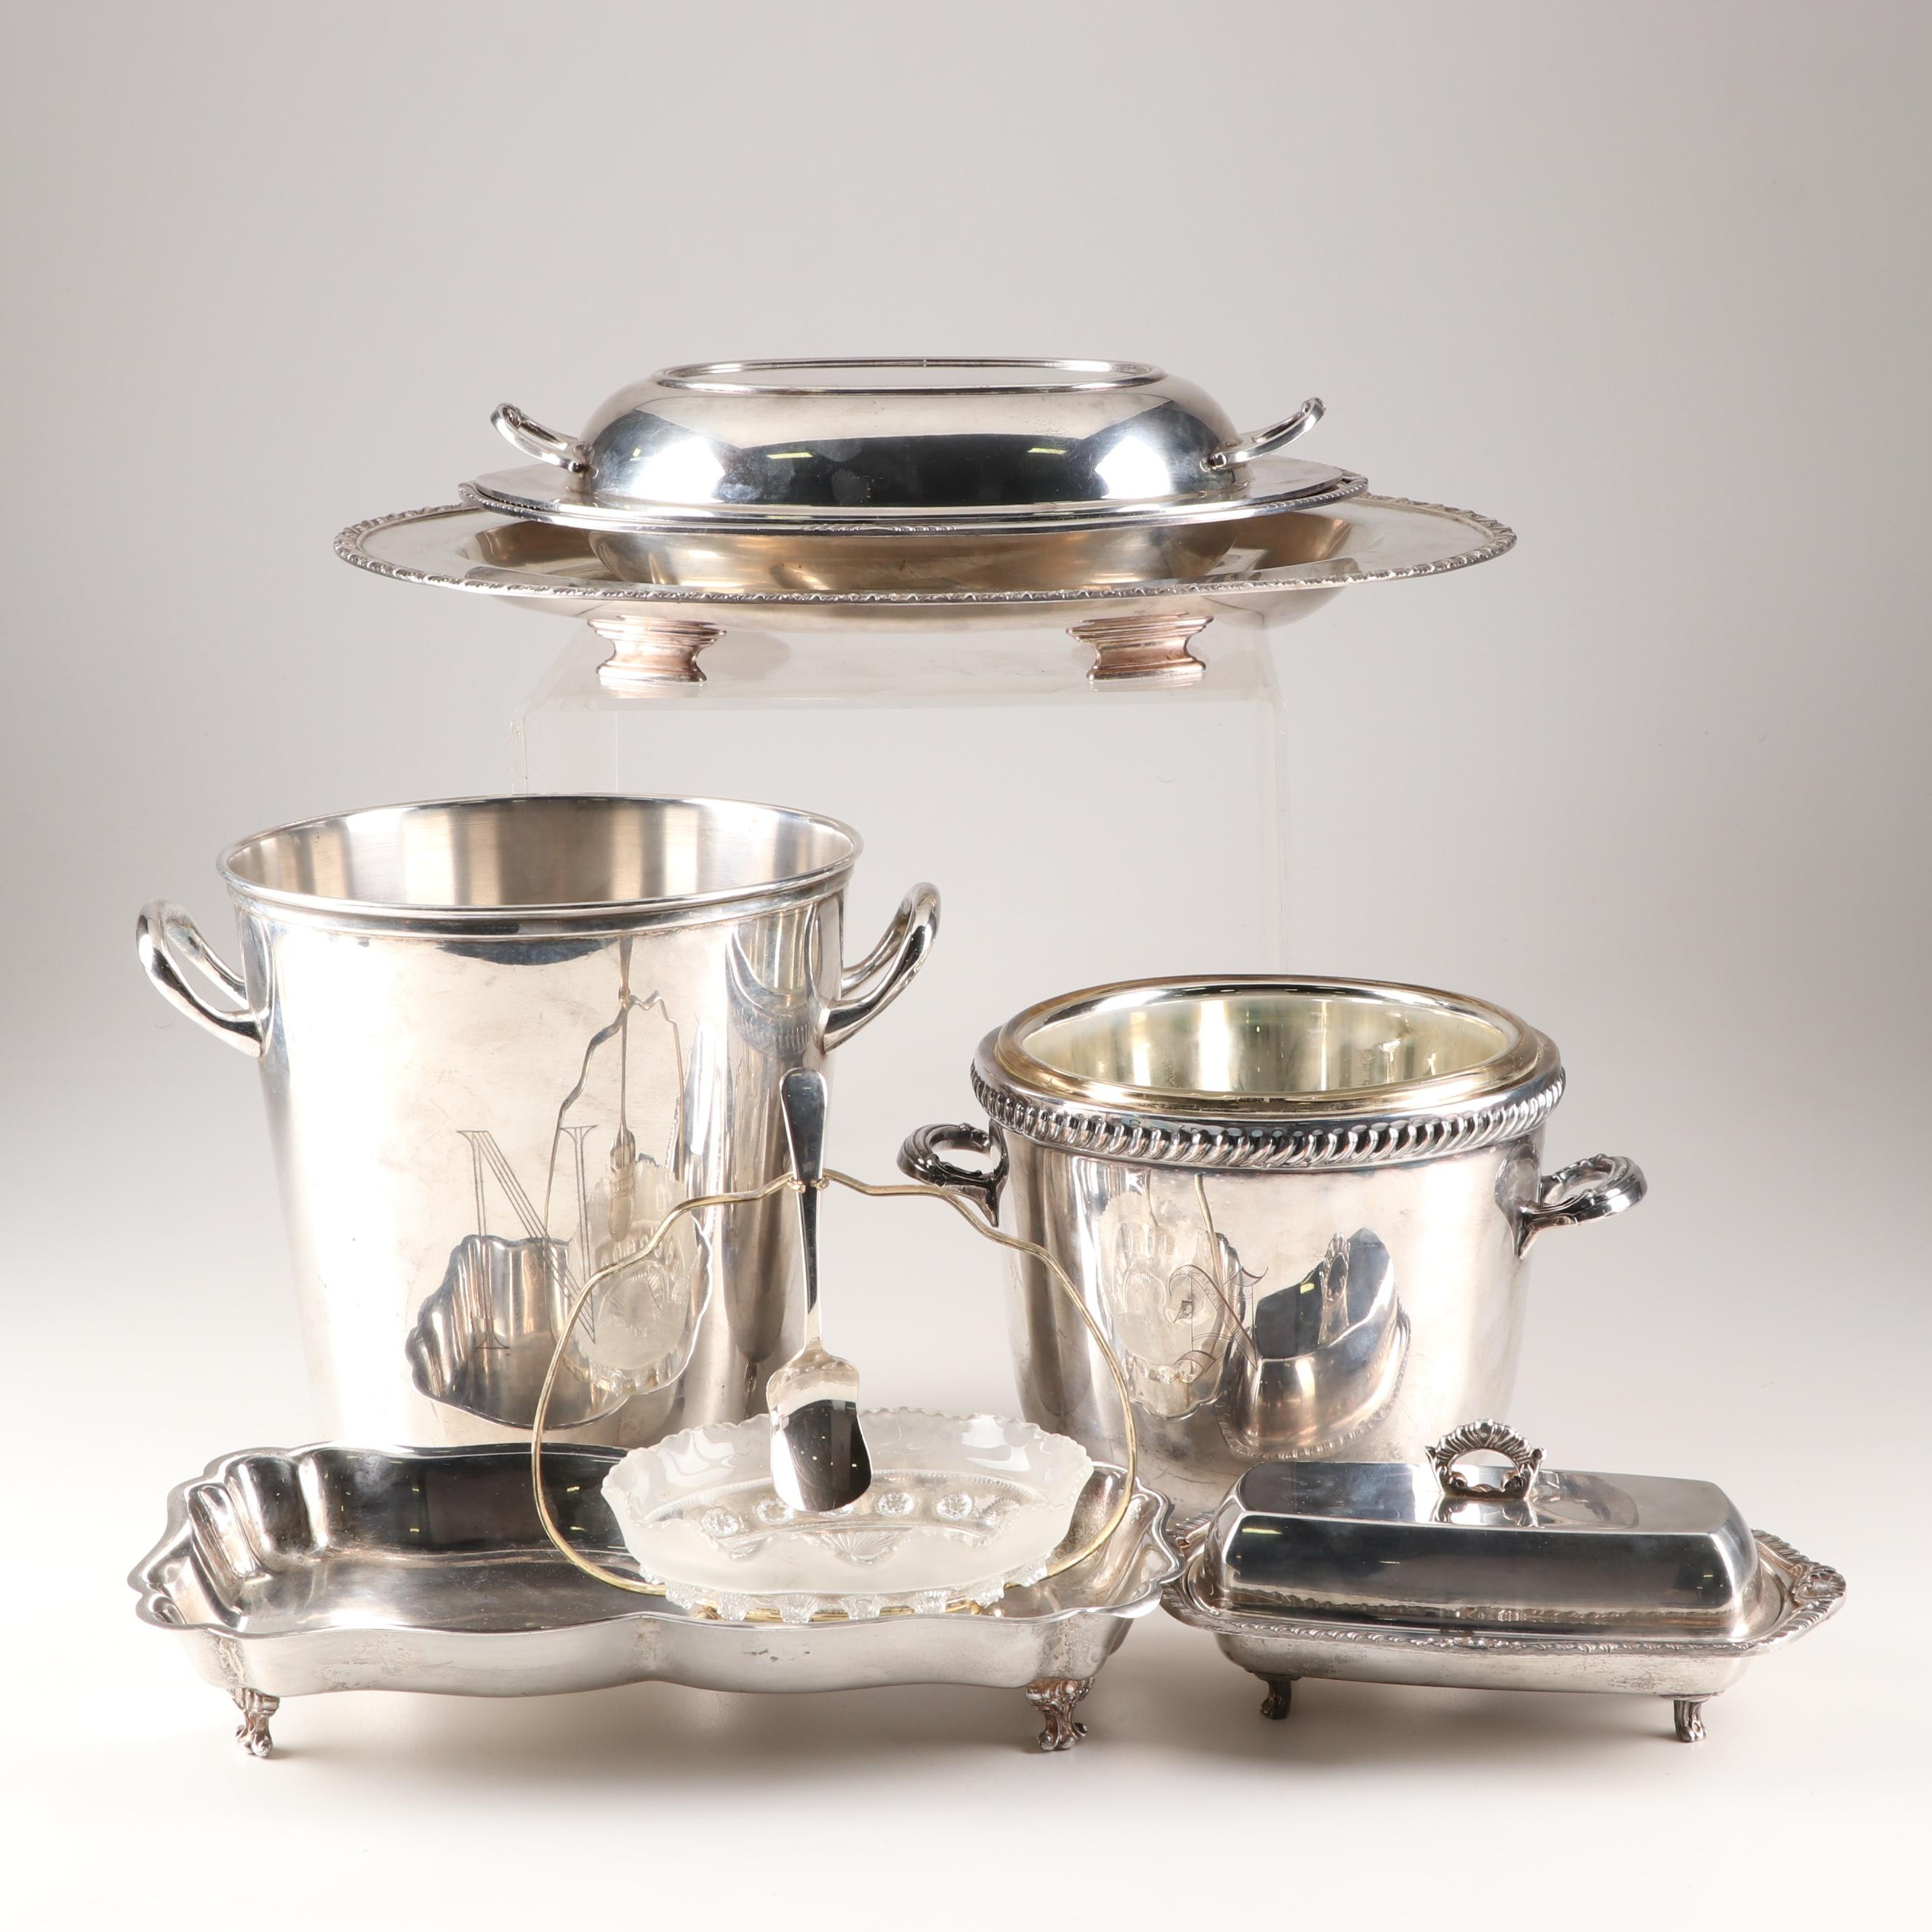 Silver Plate Tableware Grouping Featuring Wm Rogers and Randolph